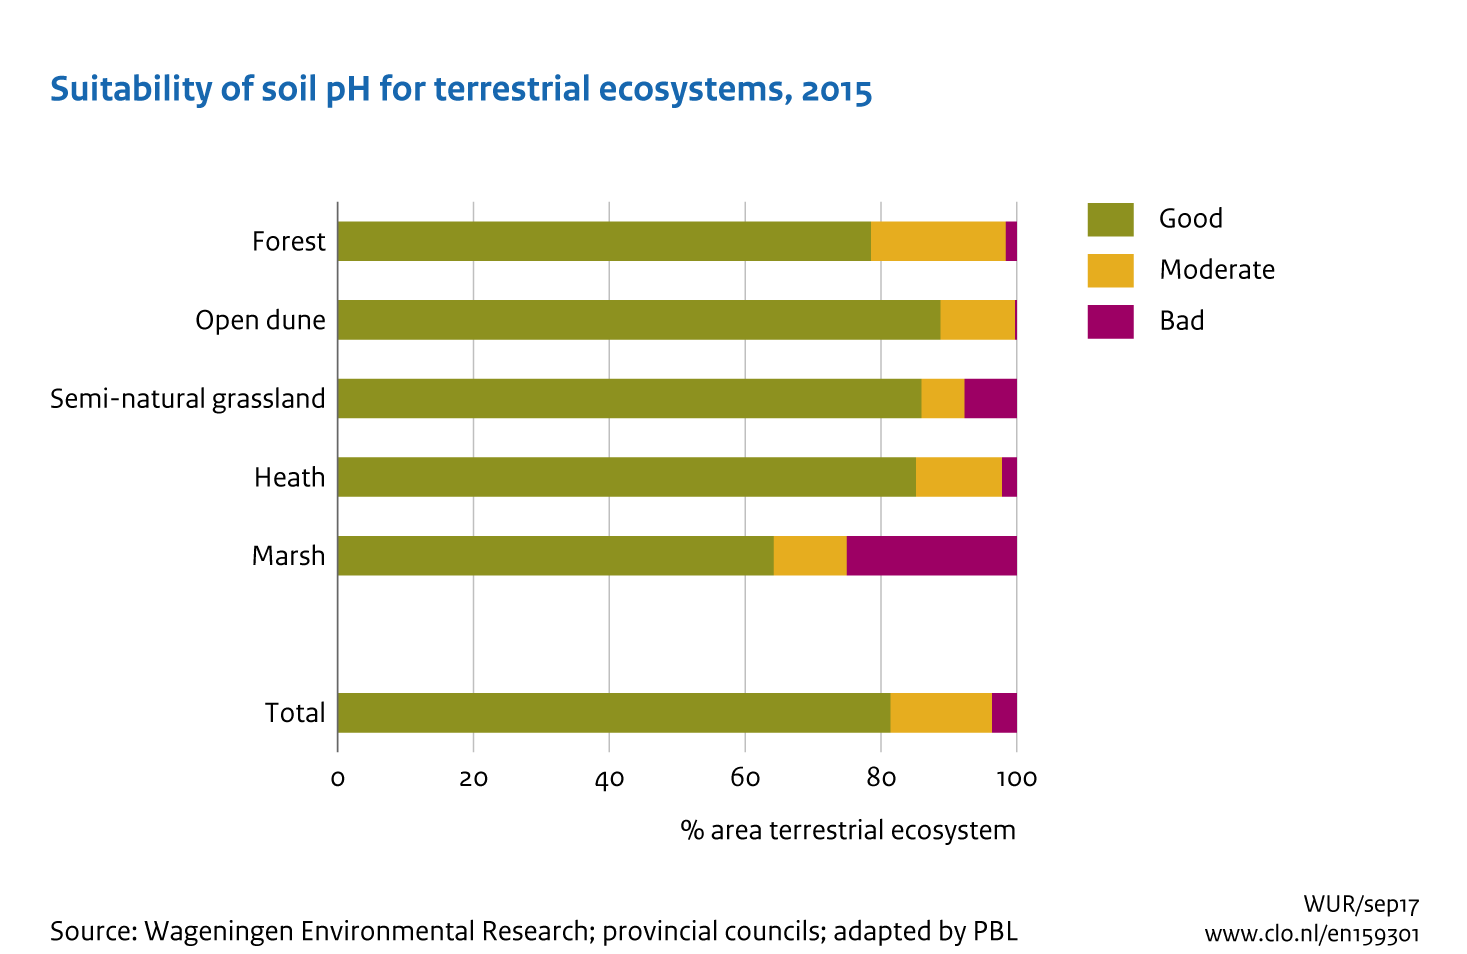 Ecosystem quality and trends in soil ph 2016 environmental data download bitmap ccuart Gallery